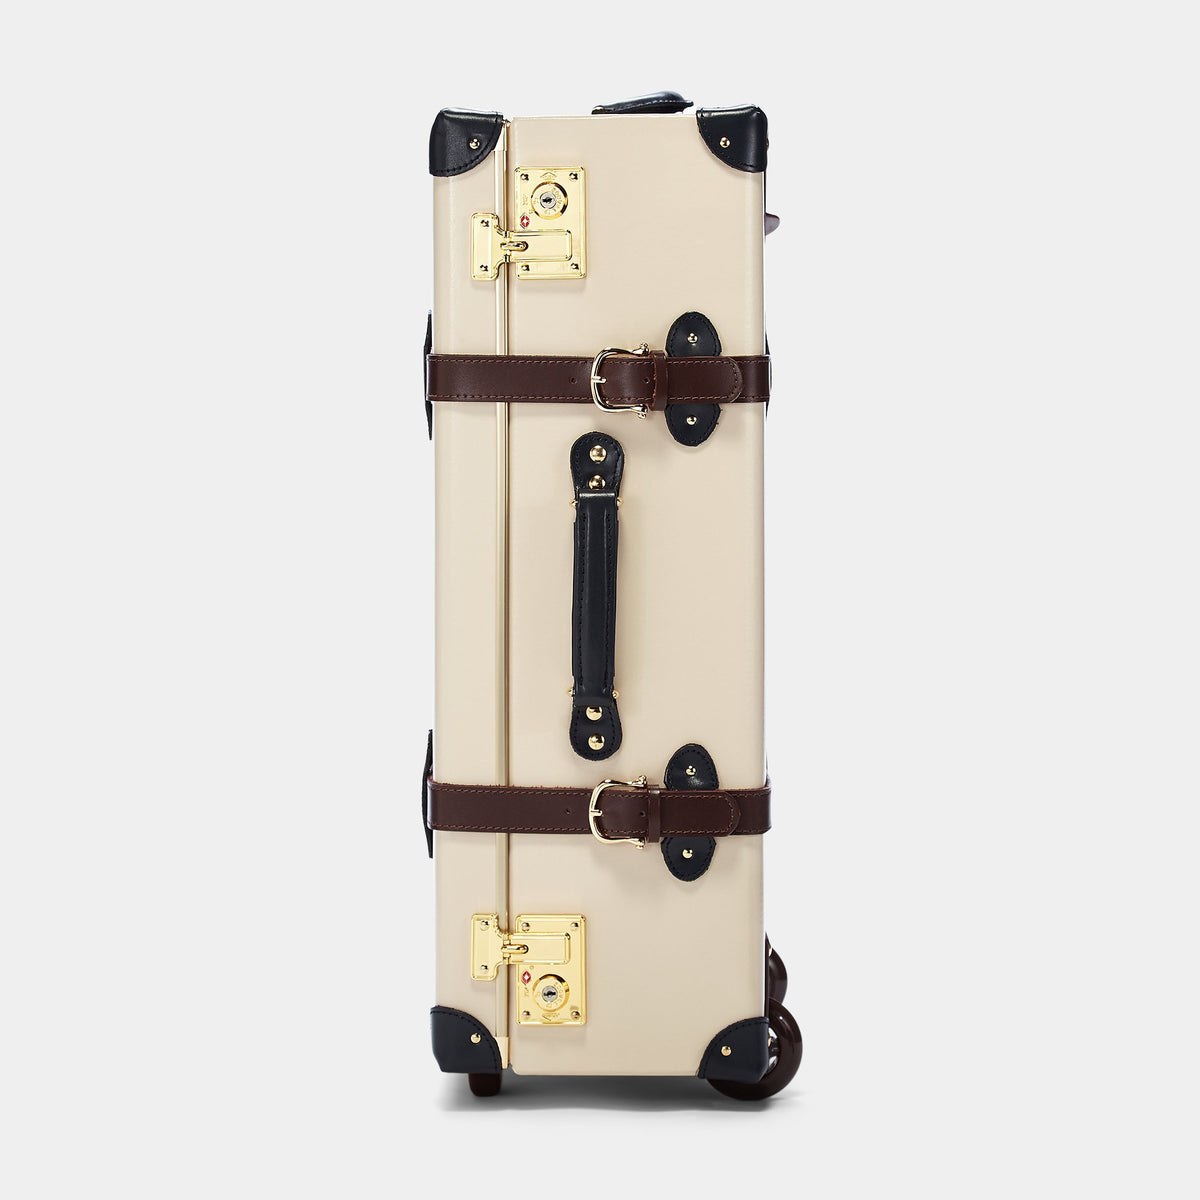 The Architect Stowaway in Cream -Vintage Style Leather Case - Exterior Side